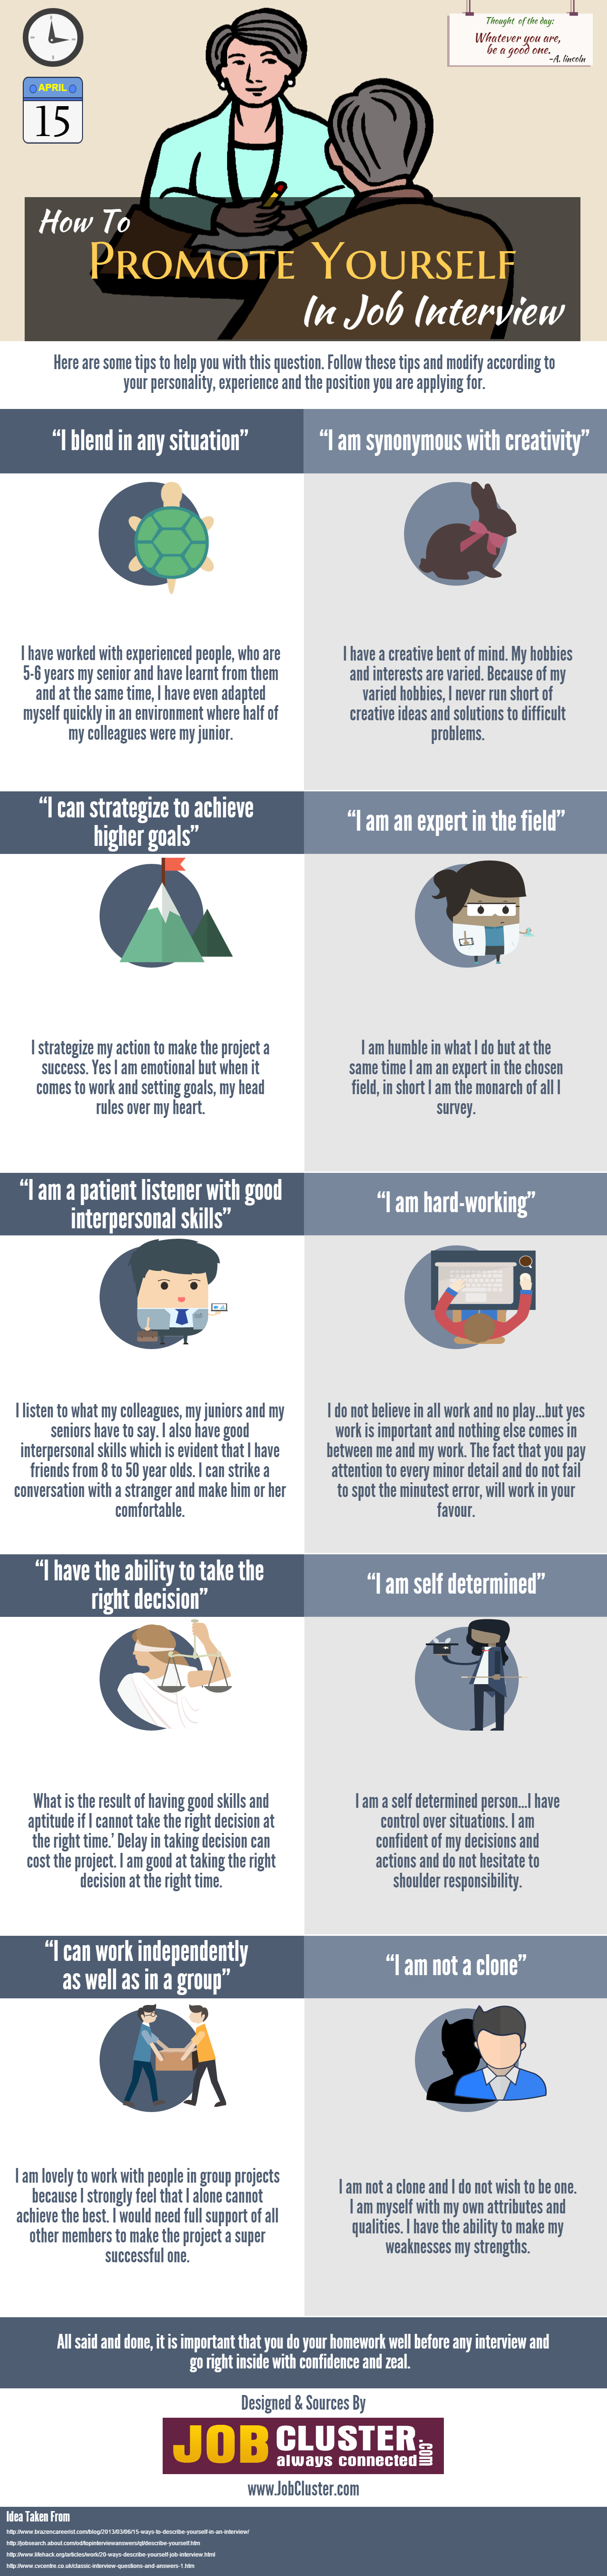 7 smart questions you should ask at the end of every job interview self promotion in job interview infographic